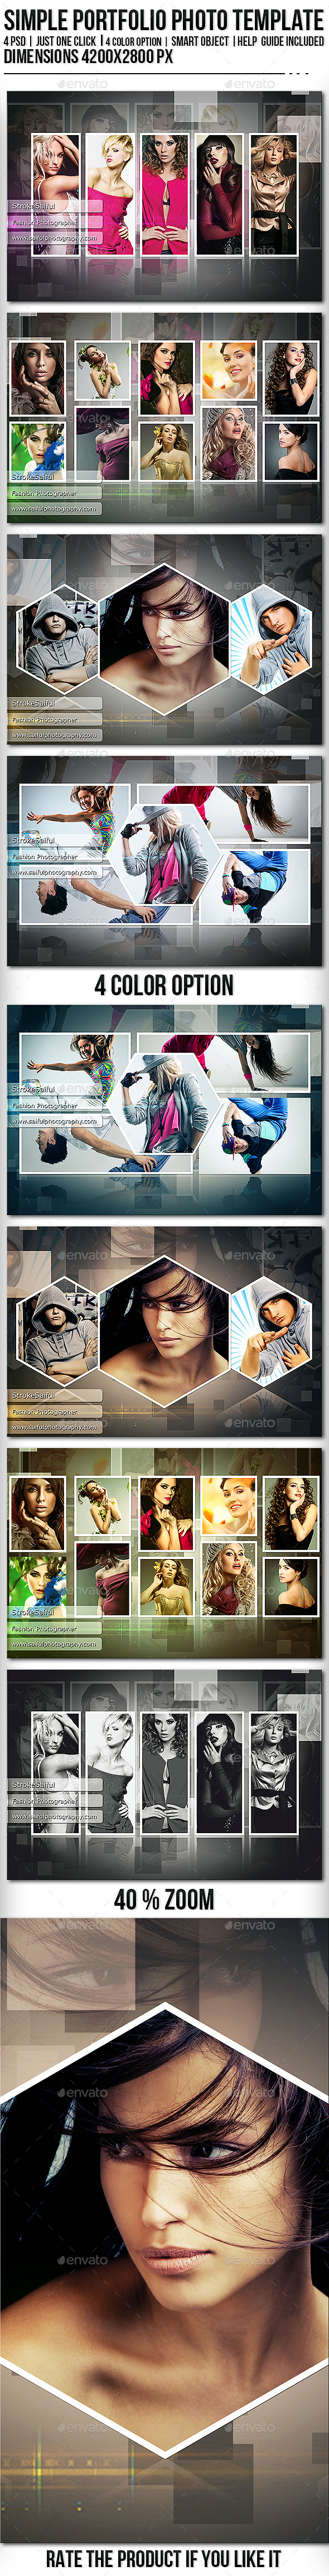 Simple Portfolio Photo Template - Photo Templates Graphics